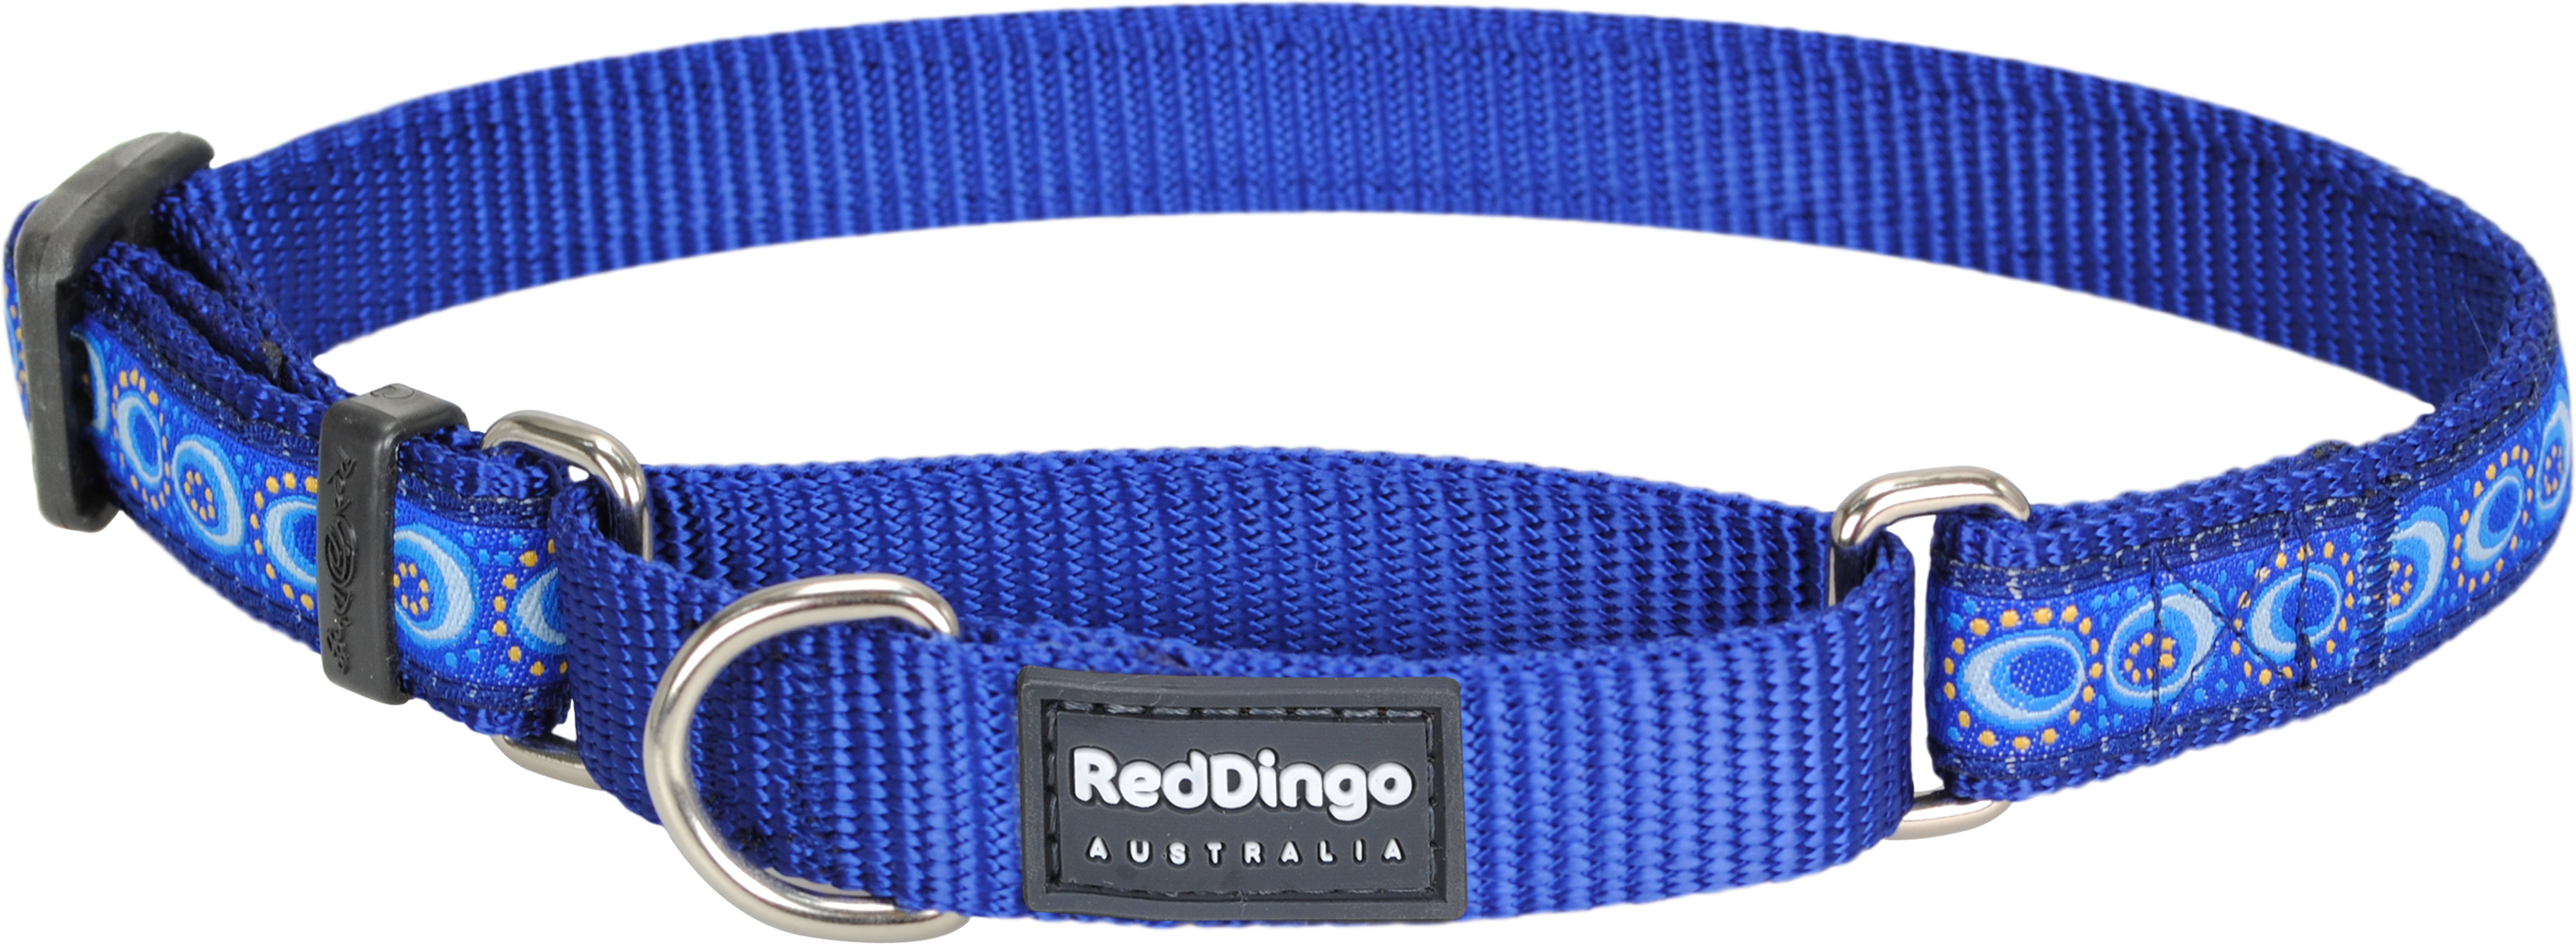 red dingo martingale collar cosmos dark blue mccodb